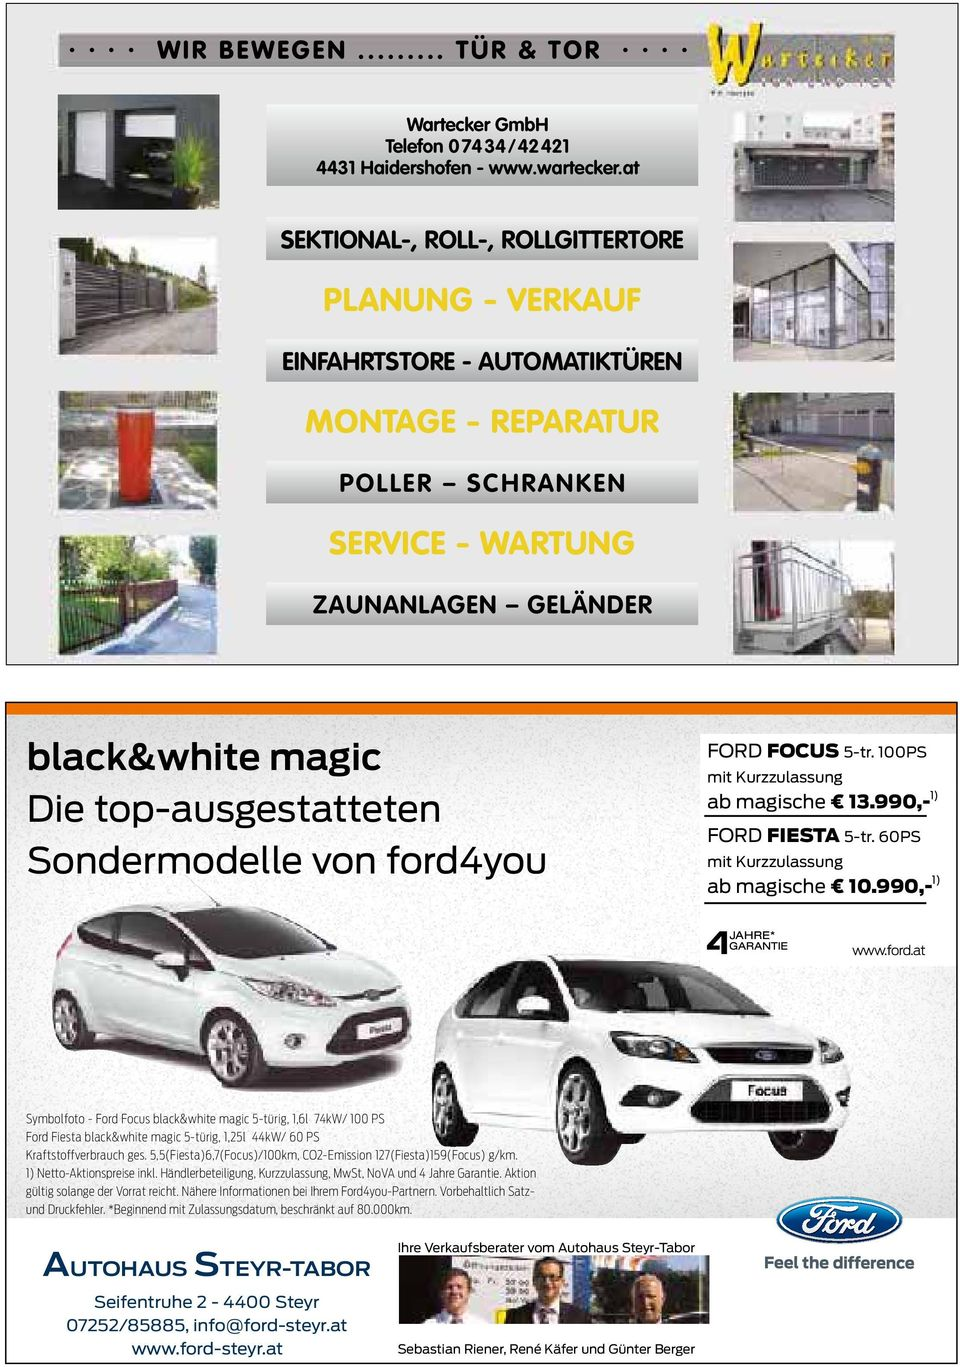 top-ausgestatteten Sondermodelle von ford4you FORD FOCUS 5-tr. 100PS mit Kurzzulassung ab magische 13.990,- 1) FORD FIESTA 5-tr. 60PS mit Kurzzulassung ab magische 10.990,- 1) www.ford.at Symbolfoto - Ford Focus black&white magic 5-türig, 1,6l 74kW/ 100 PS Ford Fiesta black&white magic 5-türig, 1,25l 44kW/ 60 PS Kraftstoffverbrauch ges.